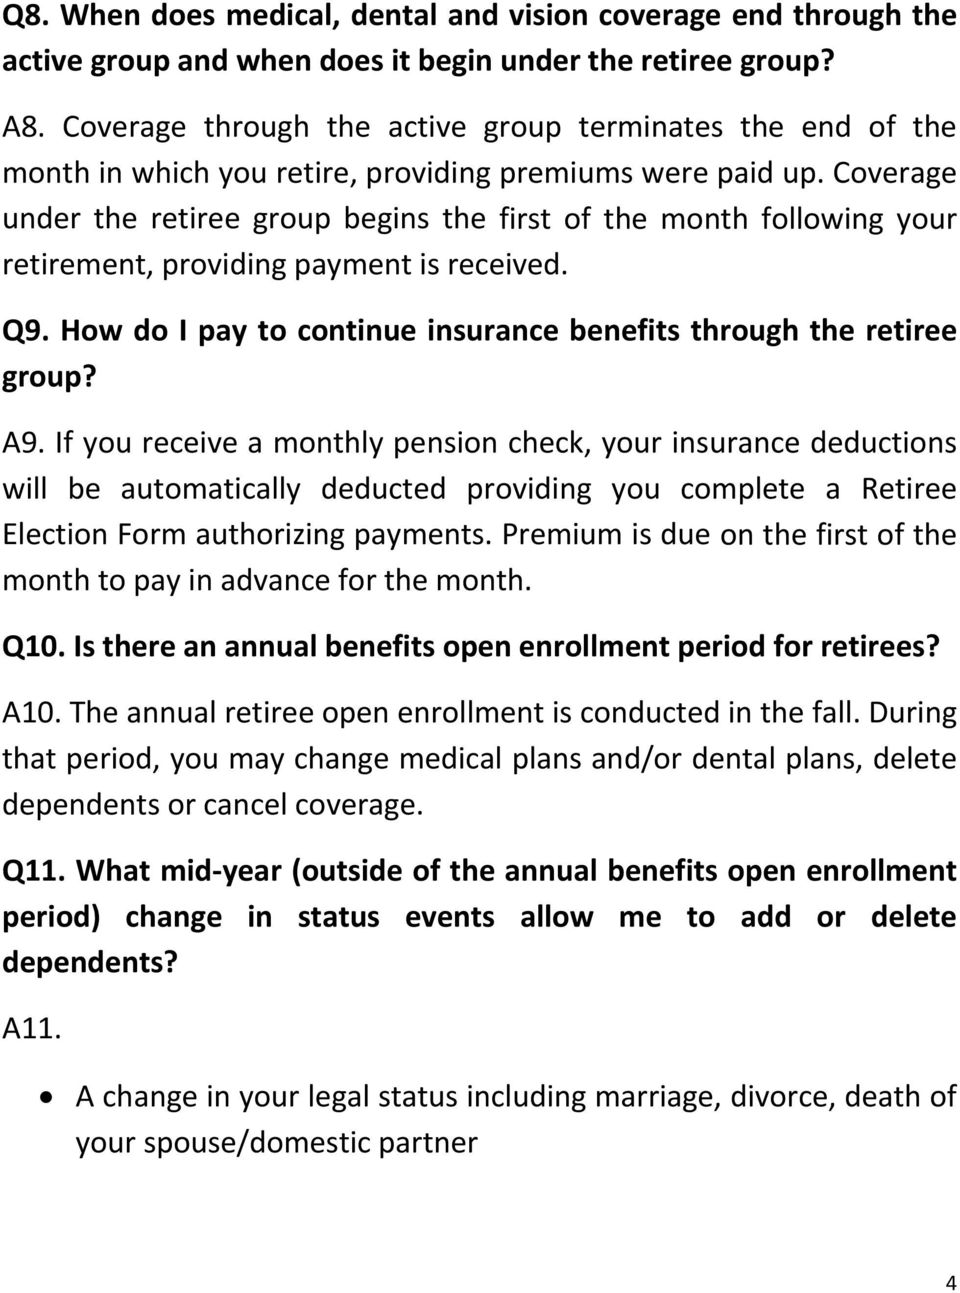 Coverage under the retiree group begins the first of the month following your retirement, providing payment is received. Q9. How do I pay to continue insurance benefits through the retiree group? A9.